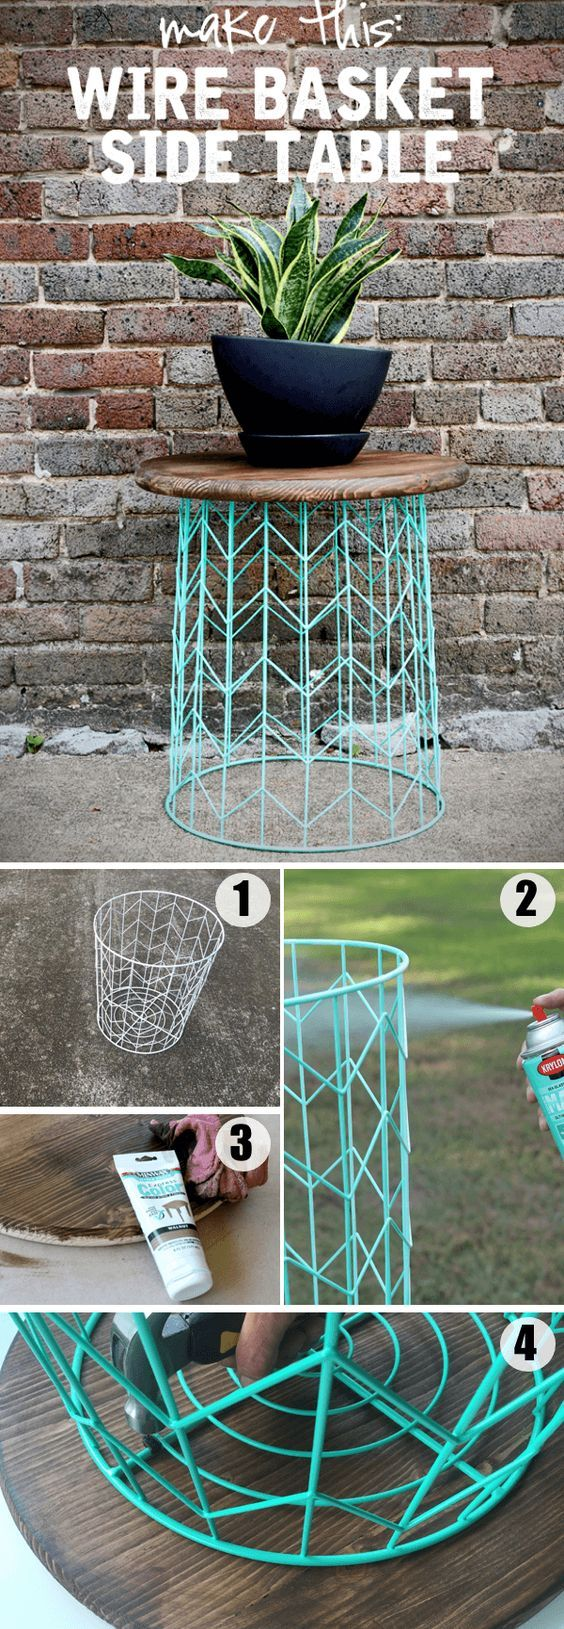 Resultado de imagem para diy outdoor side table ideas